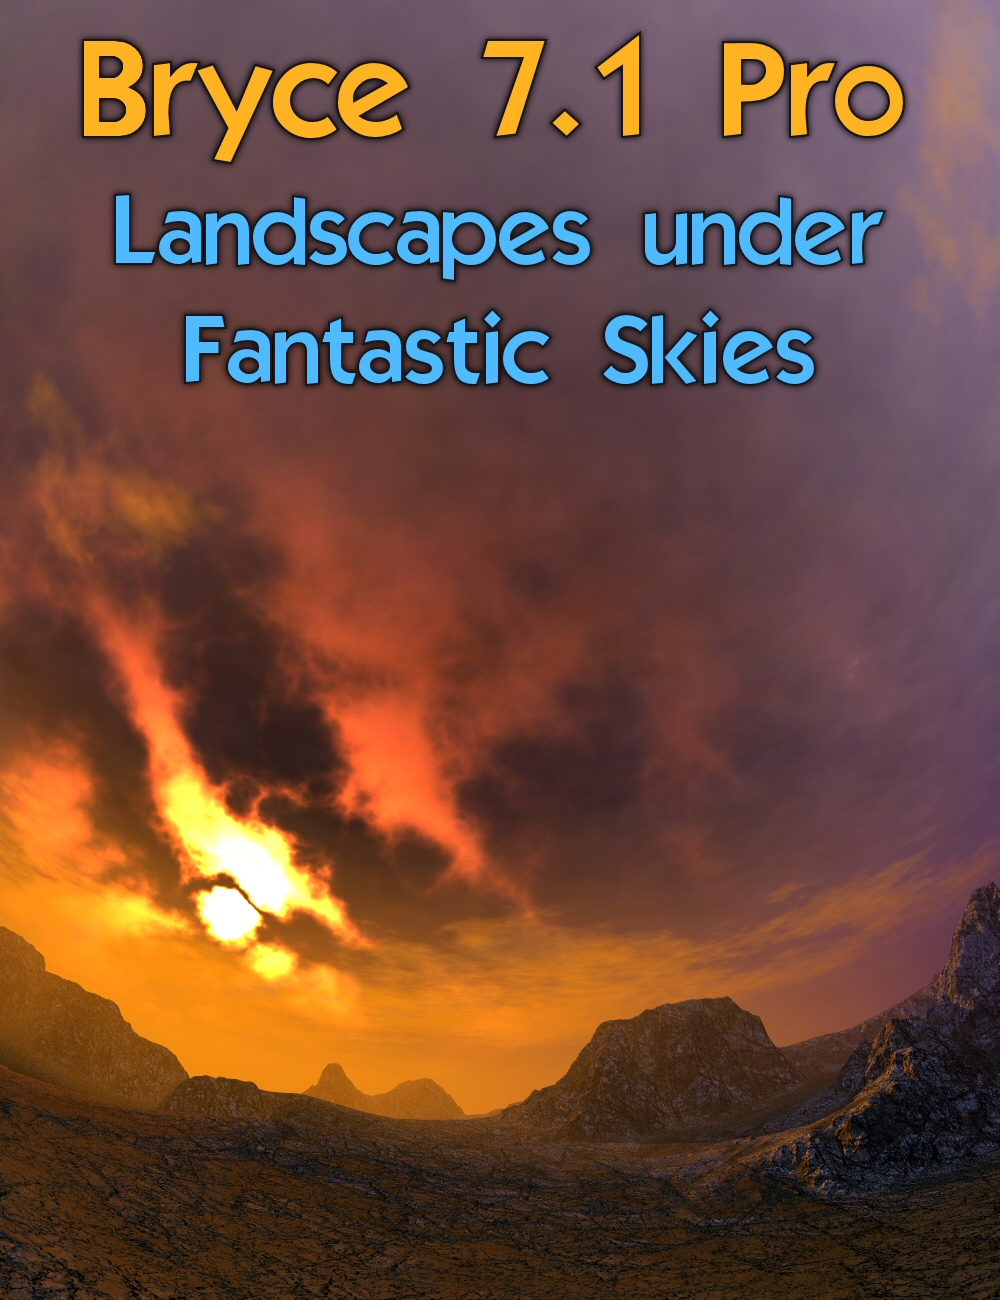 Bryce 7.1 Pro - Landscapes under Fantastic Skies by: HoroDavid Brinnen, 3D Models by Daz 3D